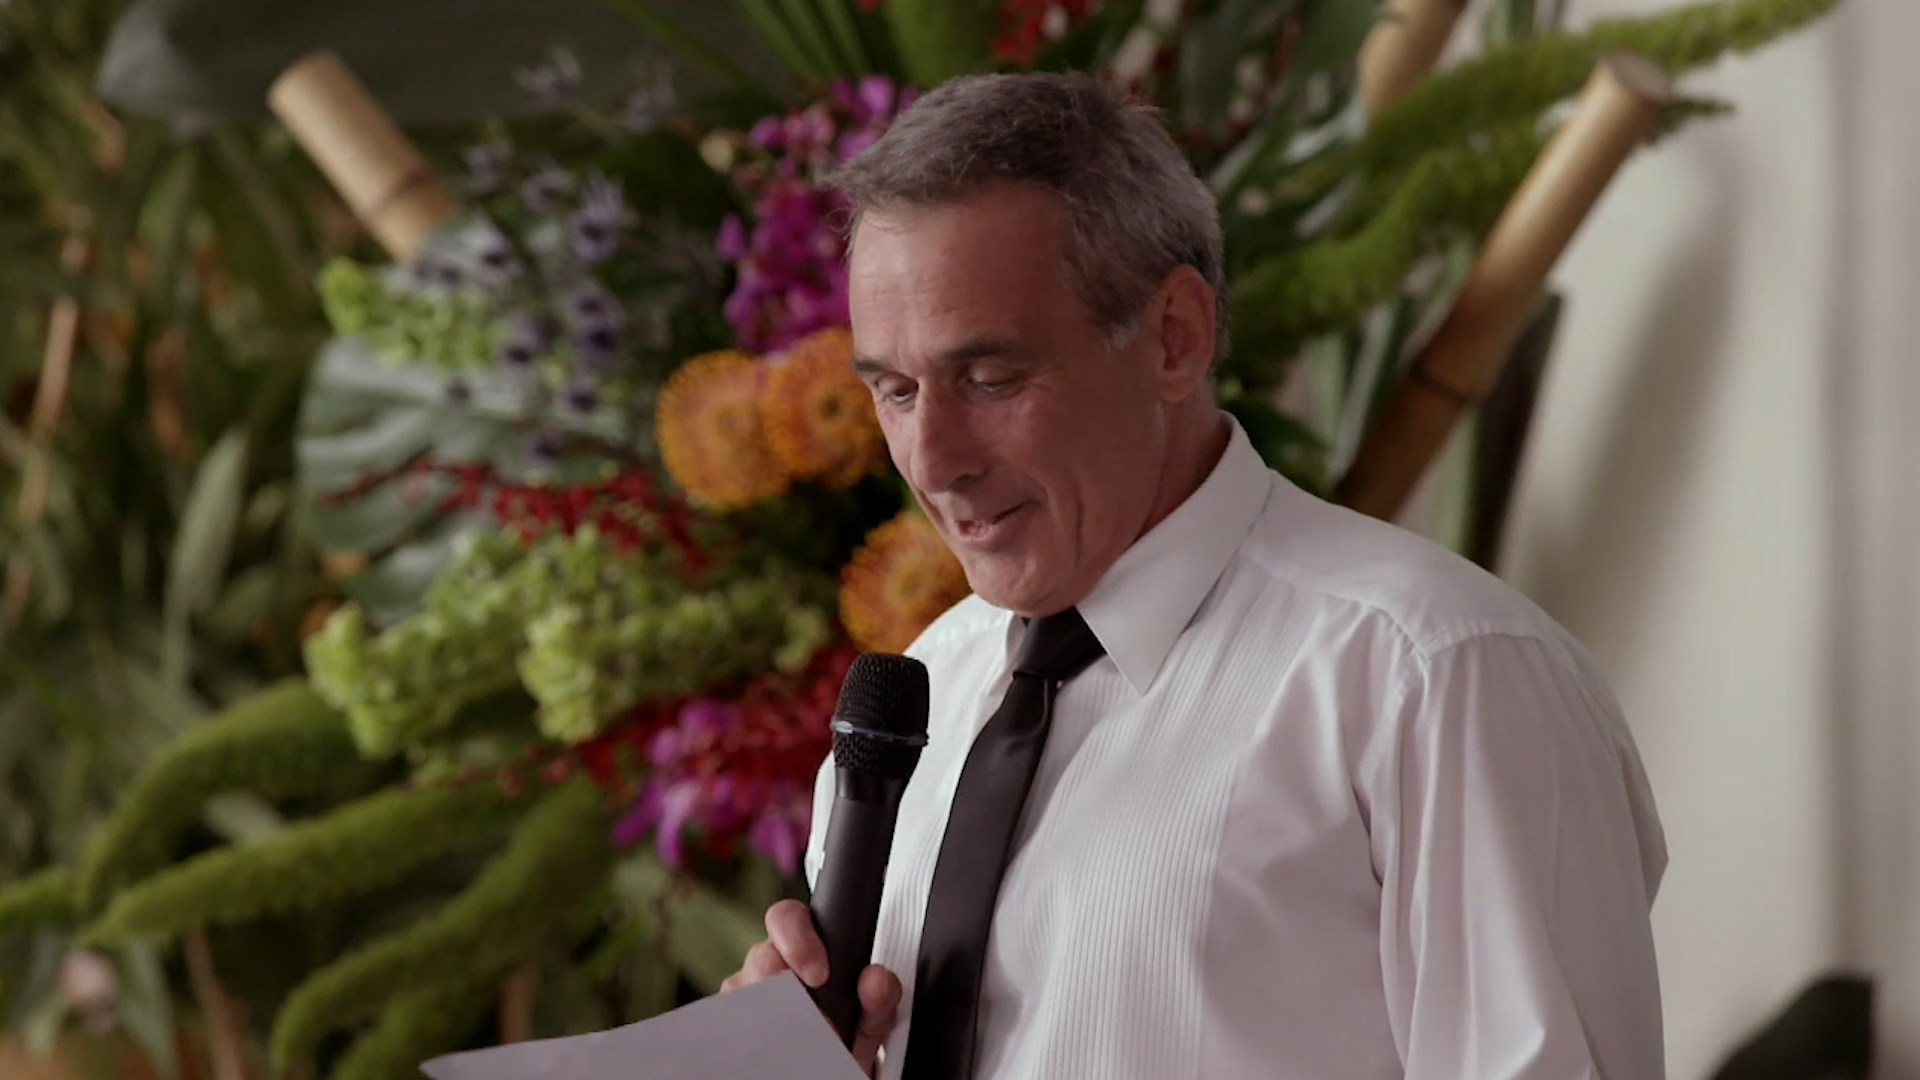 John's teary wedding speech